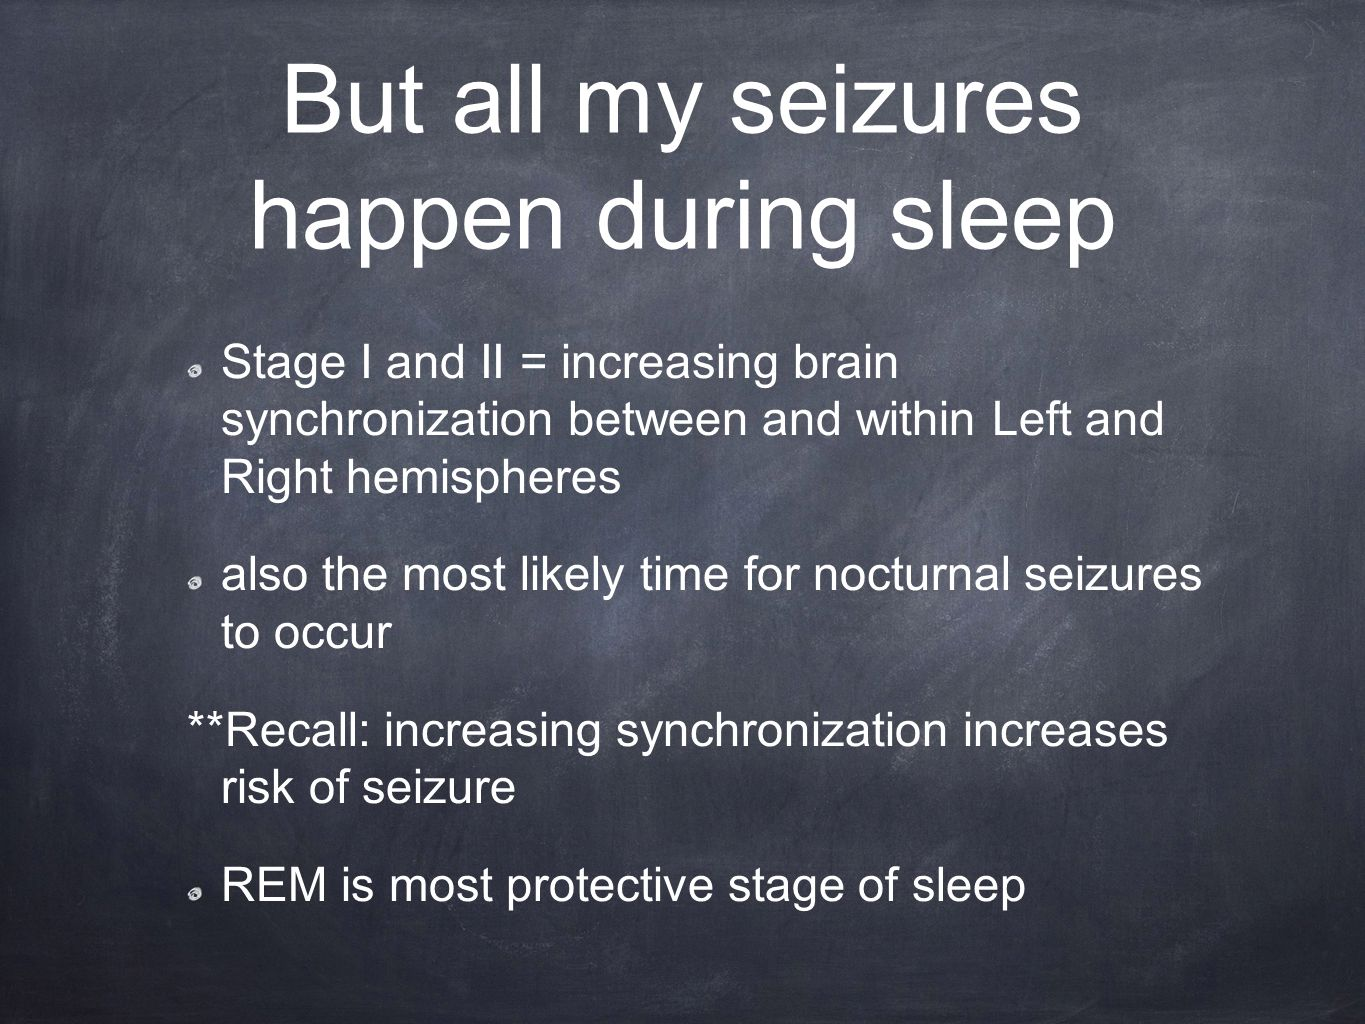 But all my seizures happen during sleep Stage I and II = increasing brain synchronization between and within Left and Right hemispheres also the most likely time for nocturnal seizures to occur **Recall: increasing synchronization increases risk of seizure REM is most protective stage of sleep